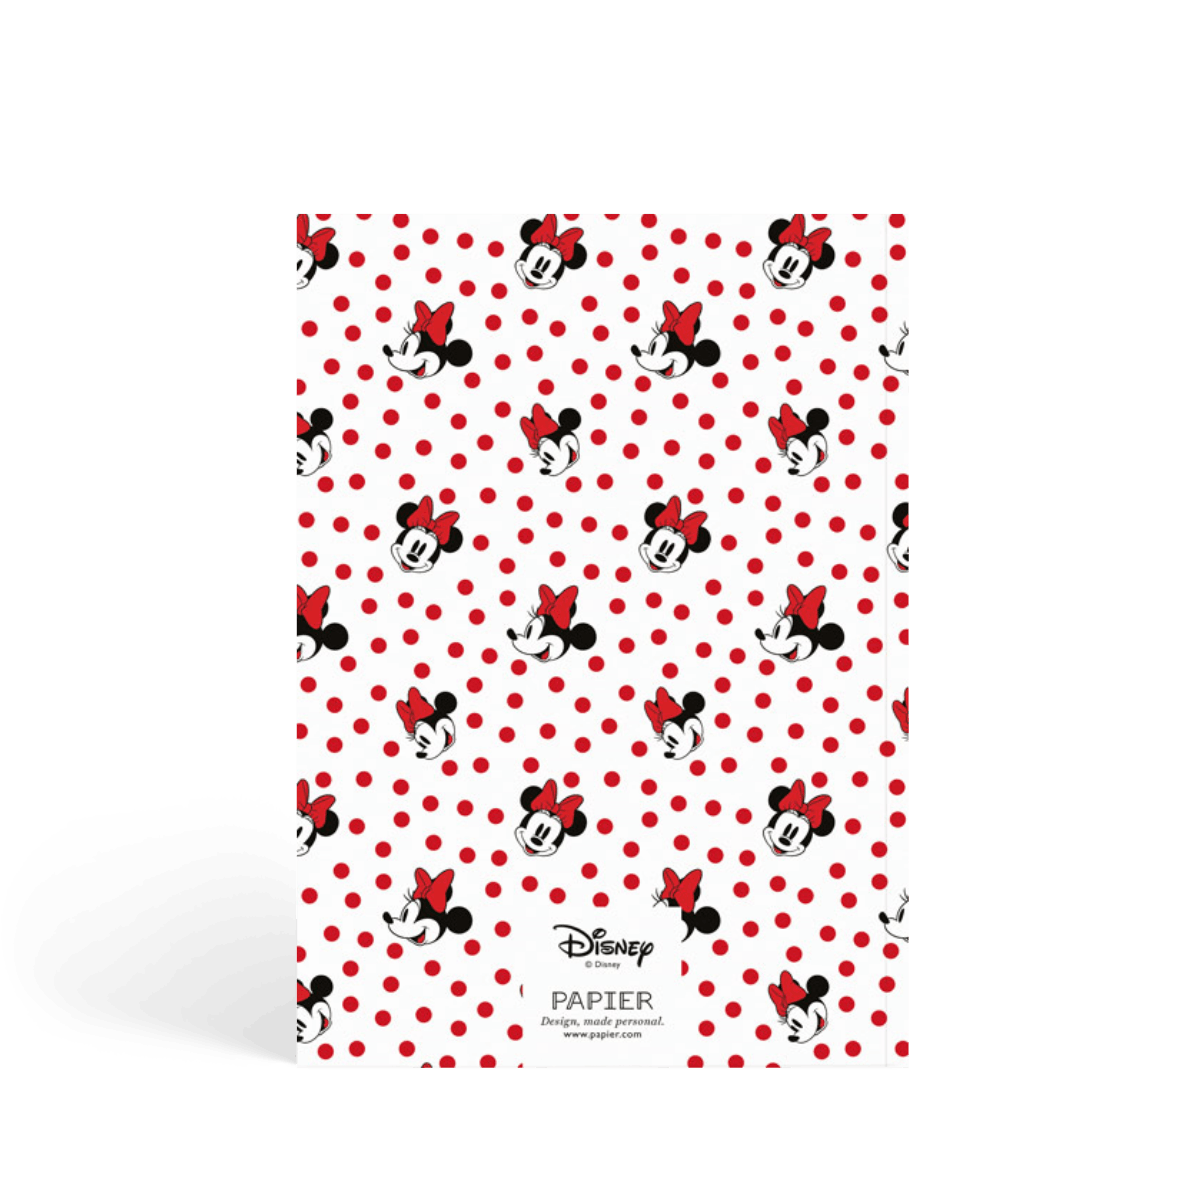 Https%3a%2f%2fwww.papier.com%2fproduct image%2f56020%2f5%2fminnie mouse 13459 ruckseite 1570129624.png?ixlib=rb 1.1